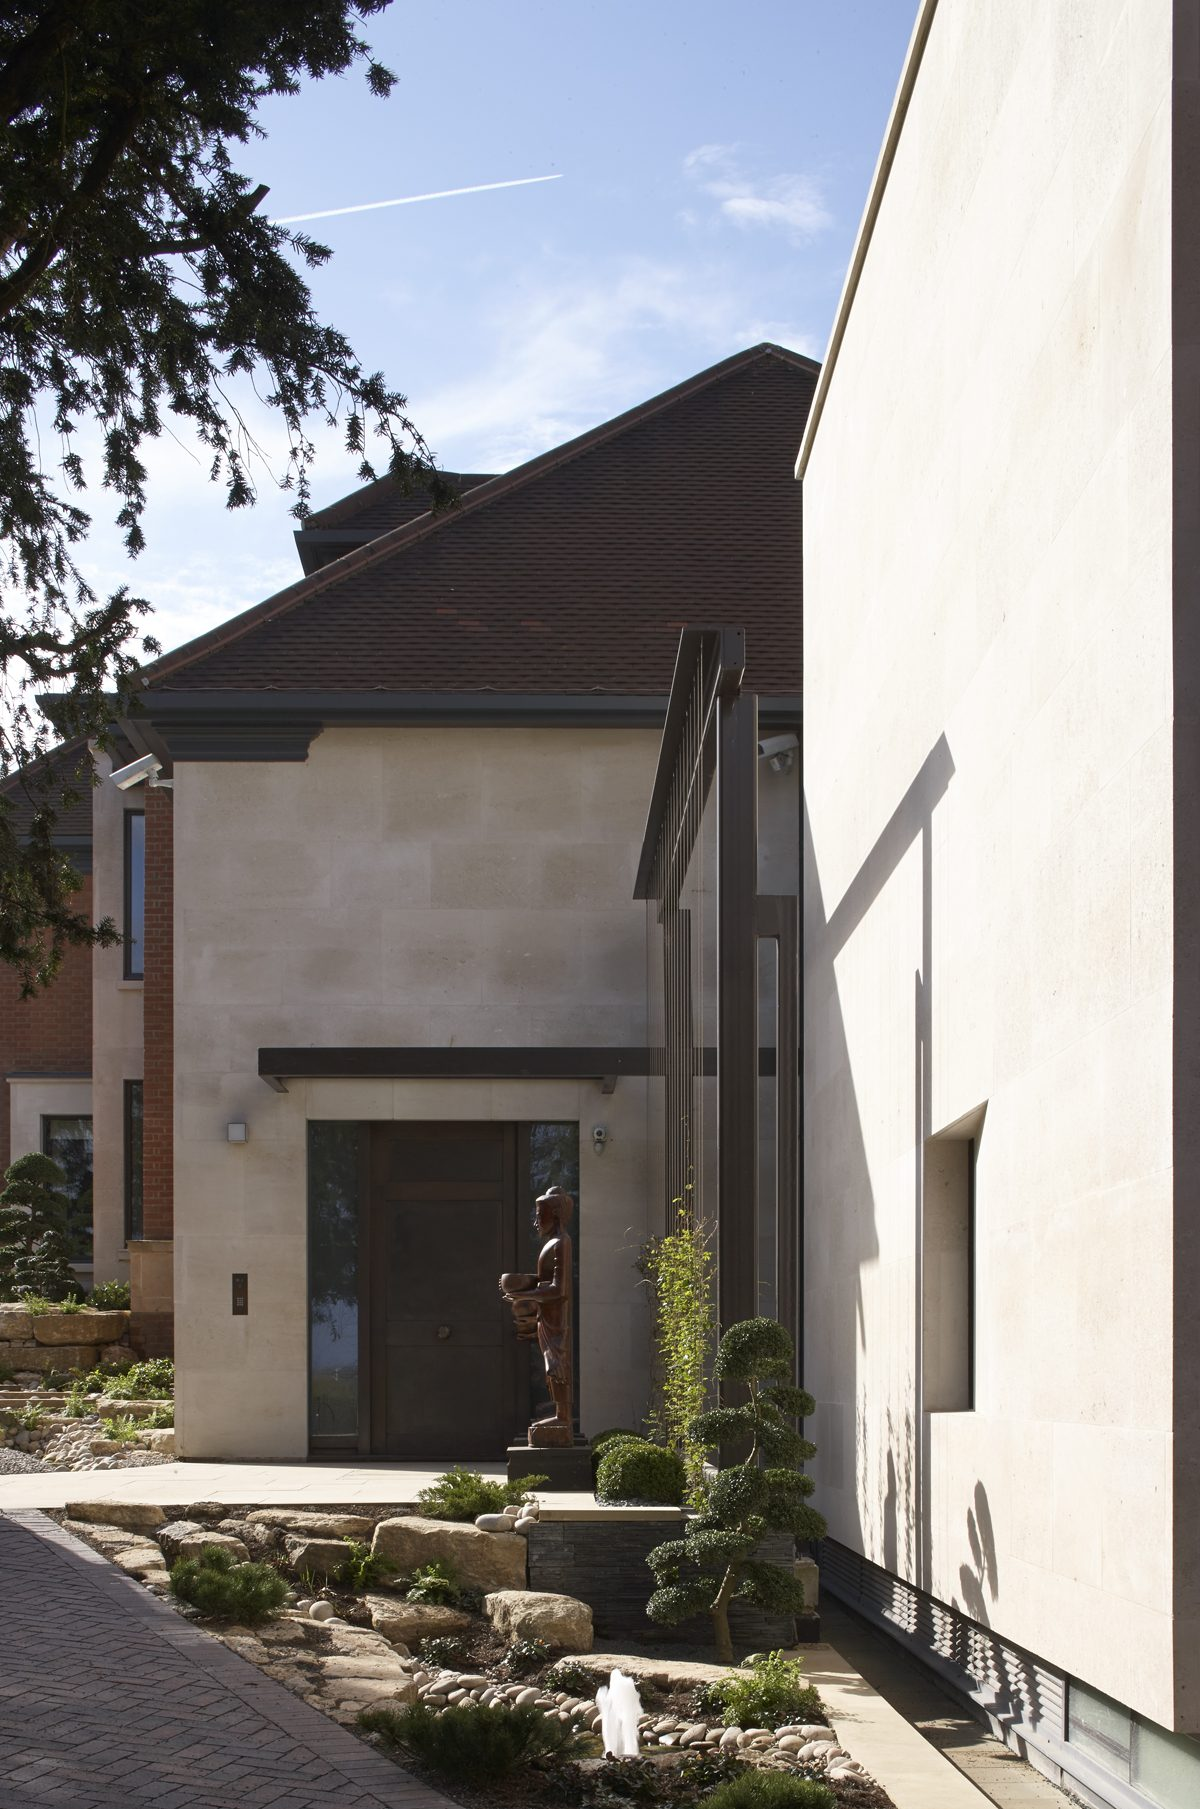 House, Wimbledon - Exterior Entrance